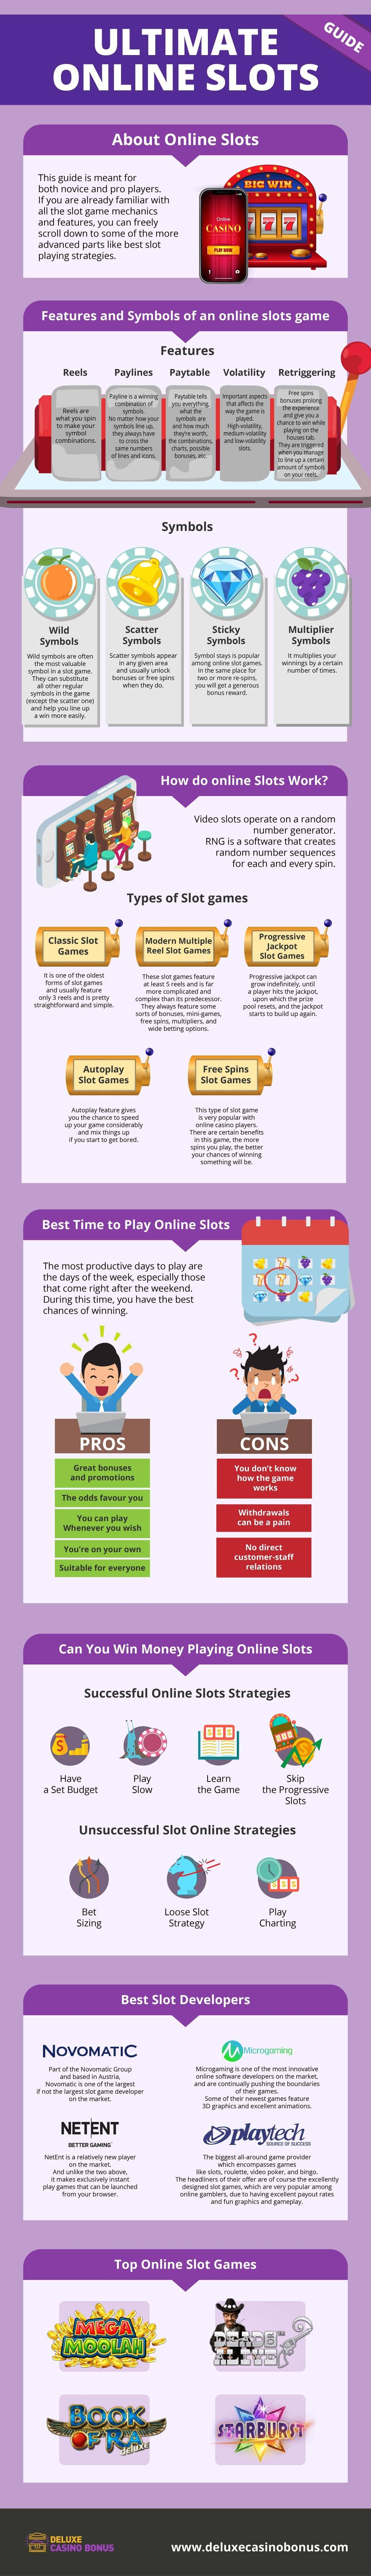 Guide to Ultimate Online Slots #infographic